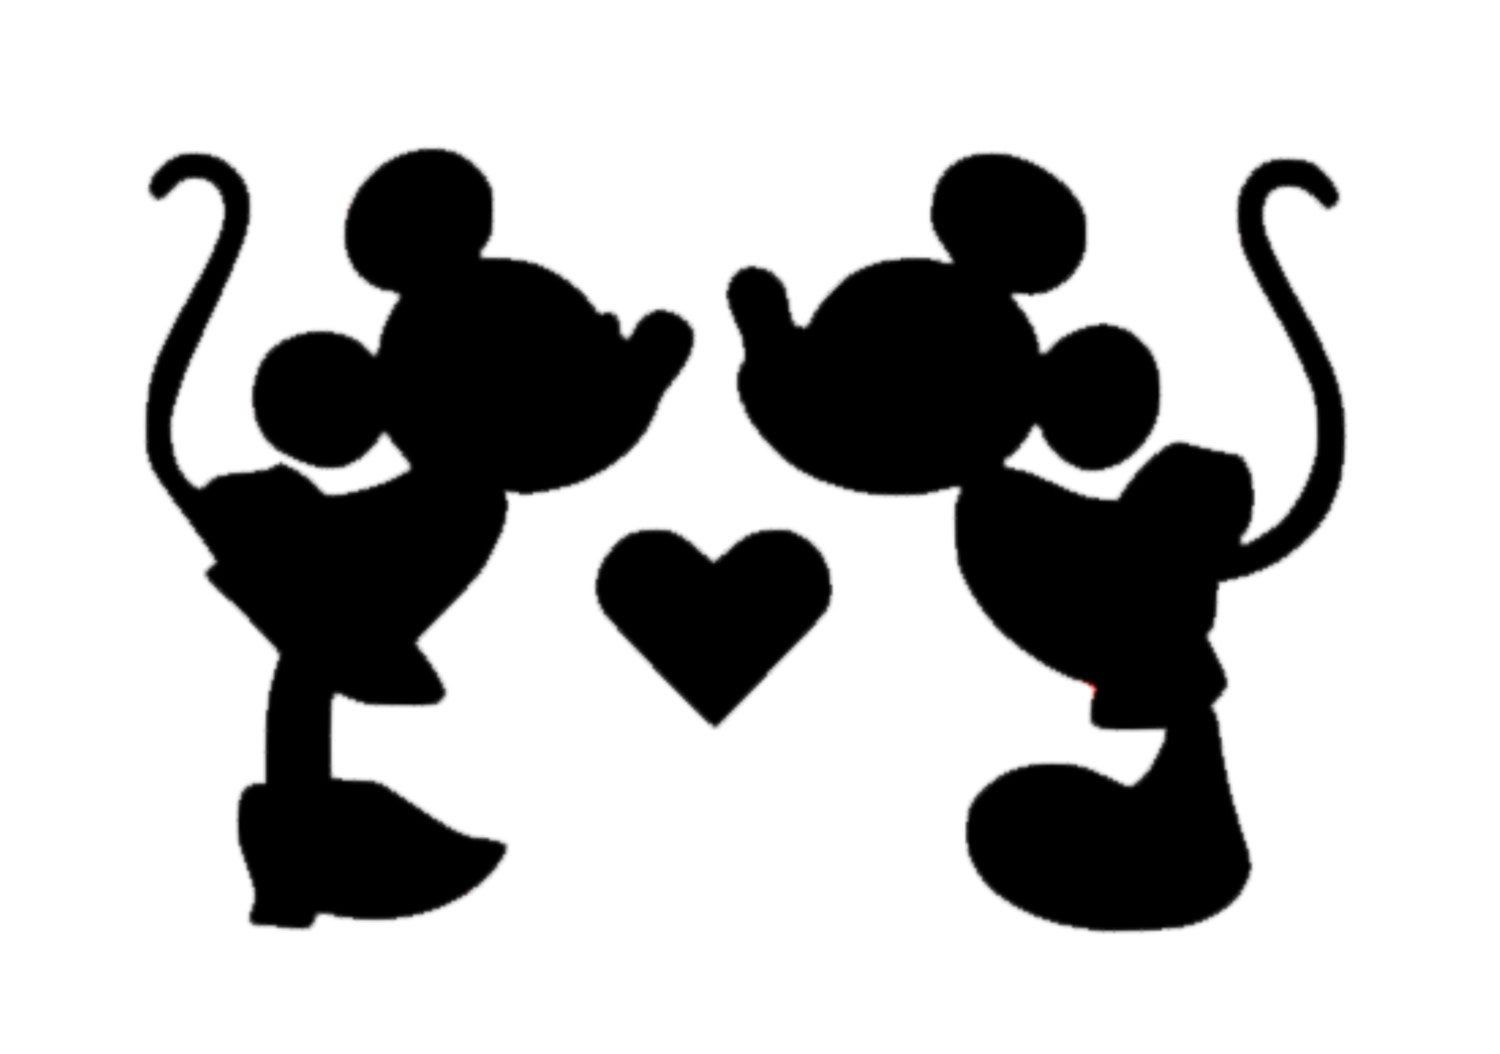 Minnie And Mickey Mouse Kissing Decal Disney Mickey Decal Disney Minnie Mouse Sticker Disney Minnie And Mickey Mouse Love Decal Minnie Mouse Stickers Mickey Mouse Silhouette Minnie Mouse Silhouette [ 1054 x 1500 Pixel ]